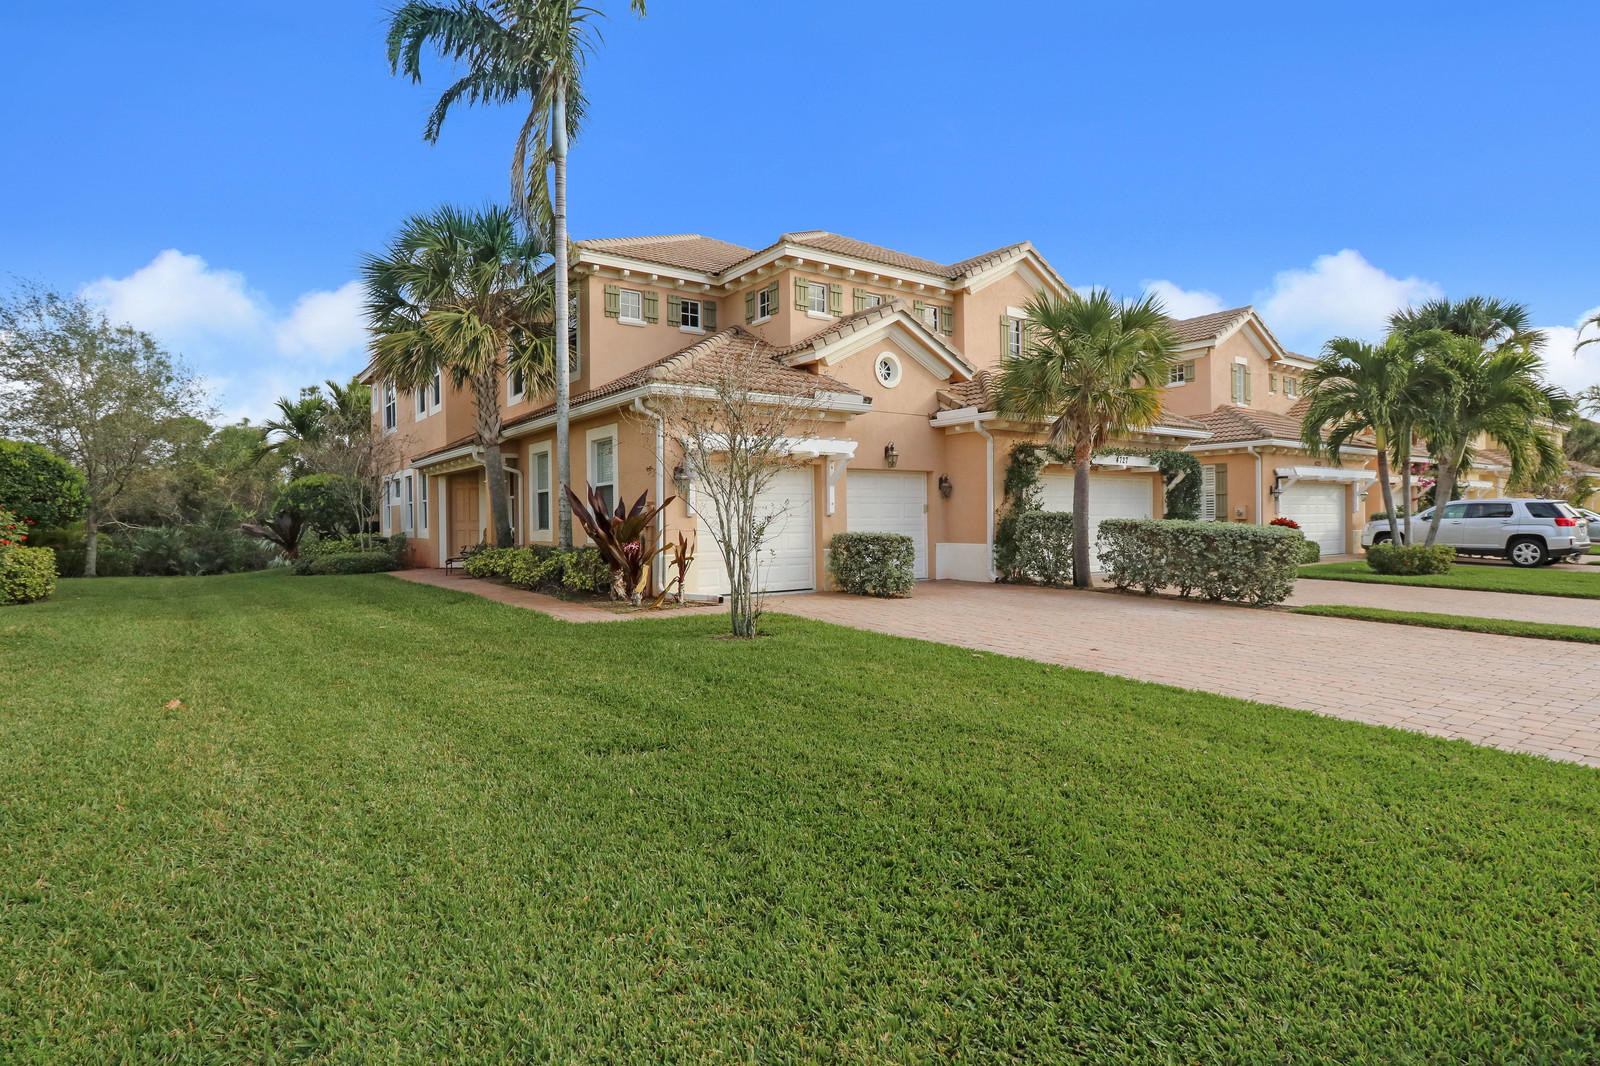 4731 Cadiz Circle, Palm Beach Gardens MLS Listing RX-10398223, Palm ...